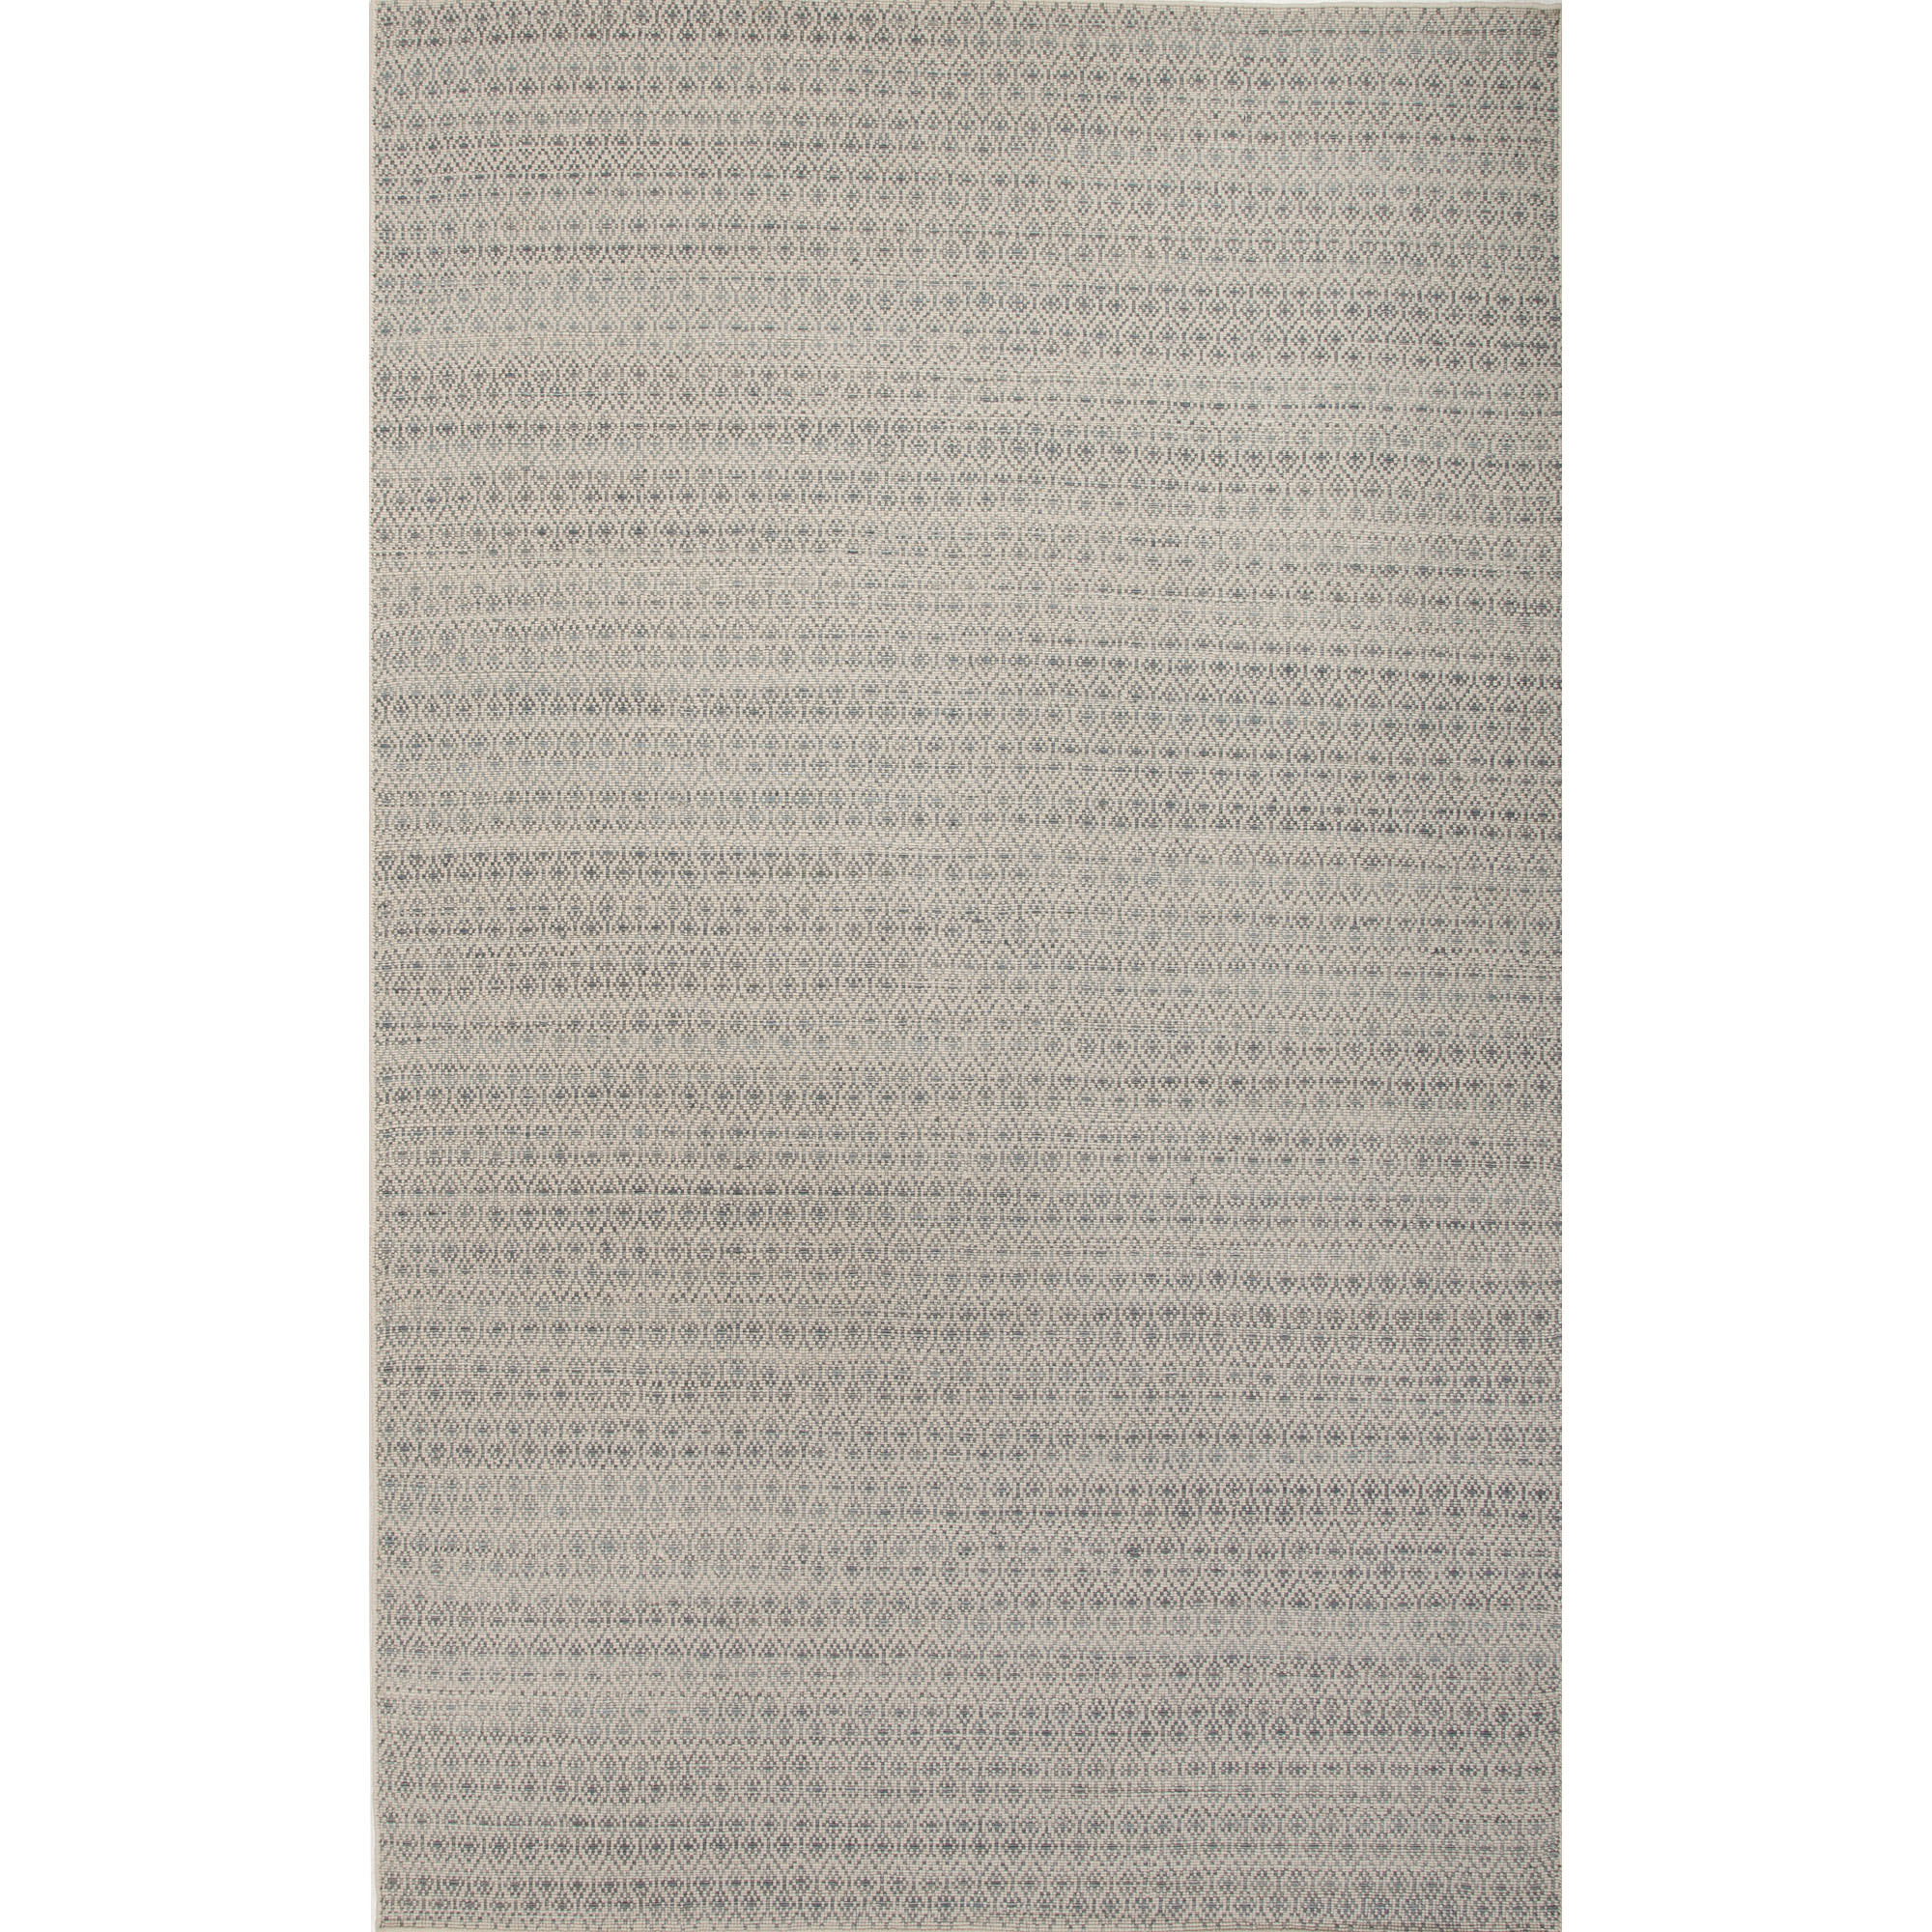 Prism 5 x 8 Rug by JAIPUR Living at Malouf Furniture Co.